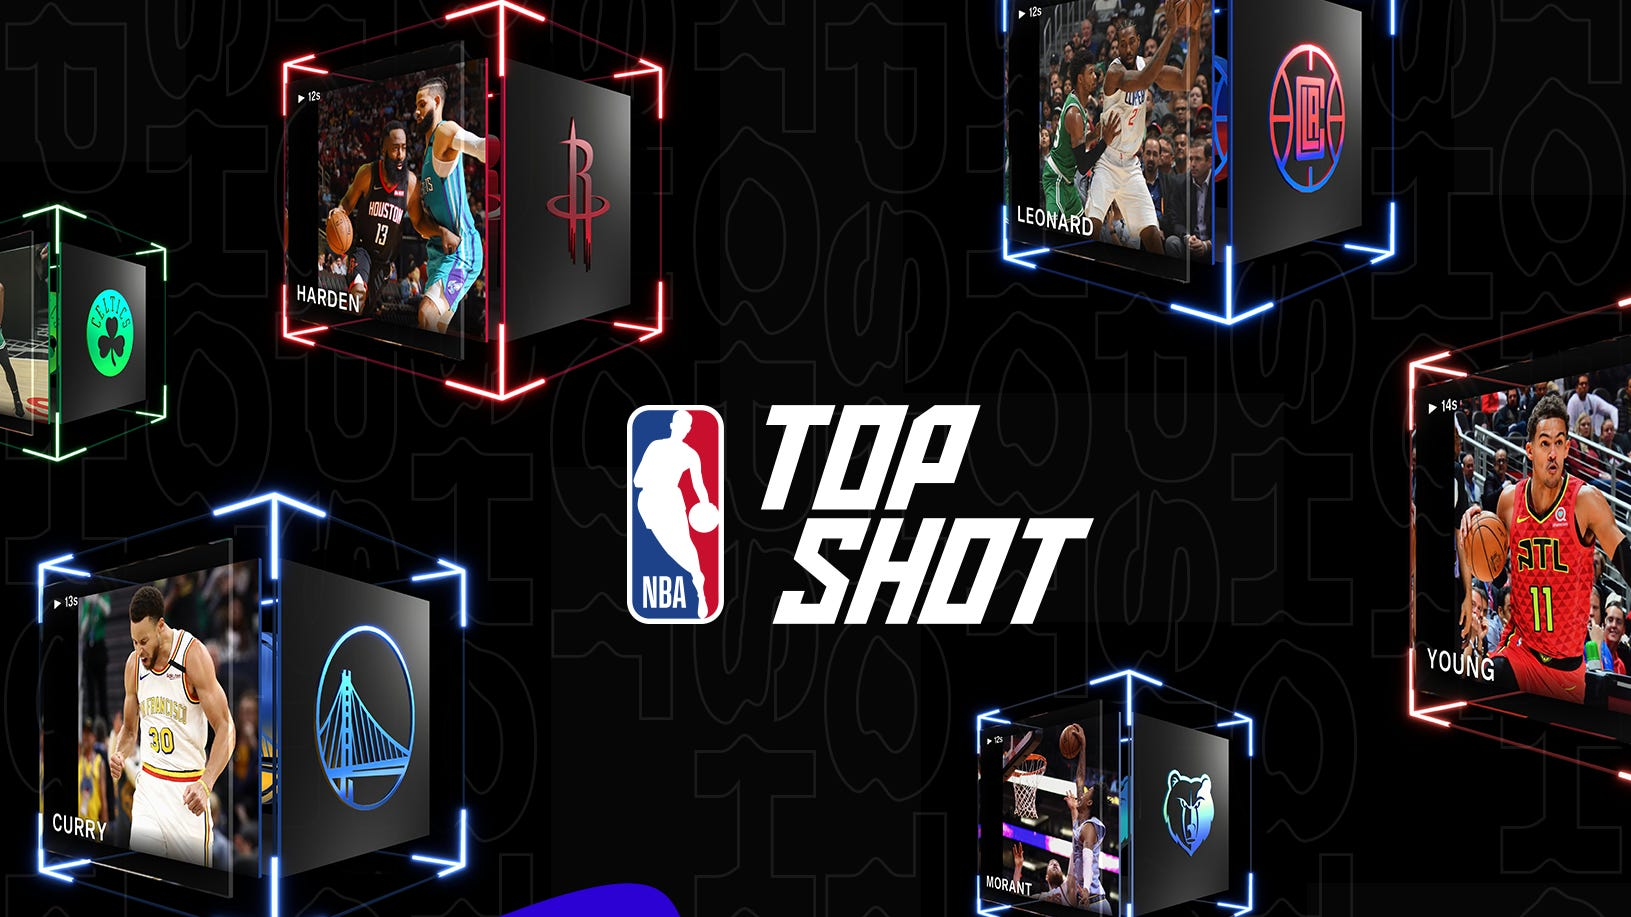 Dapper Labs, company behind NBA Top Shot, raises $305 million while being valued at $2.6 billion